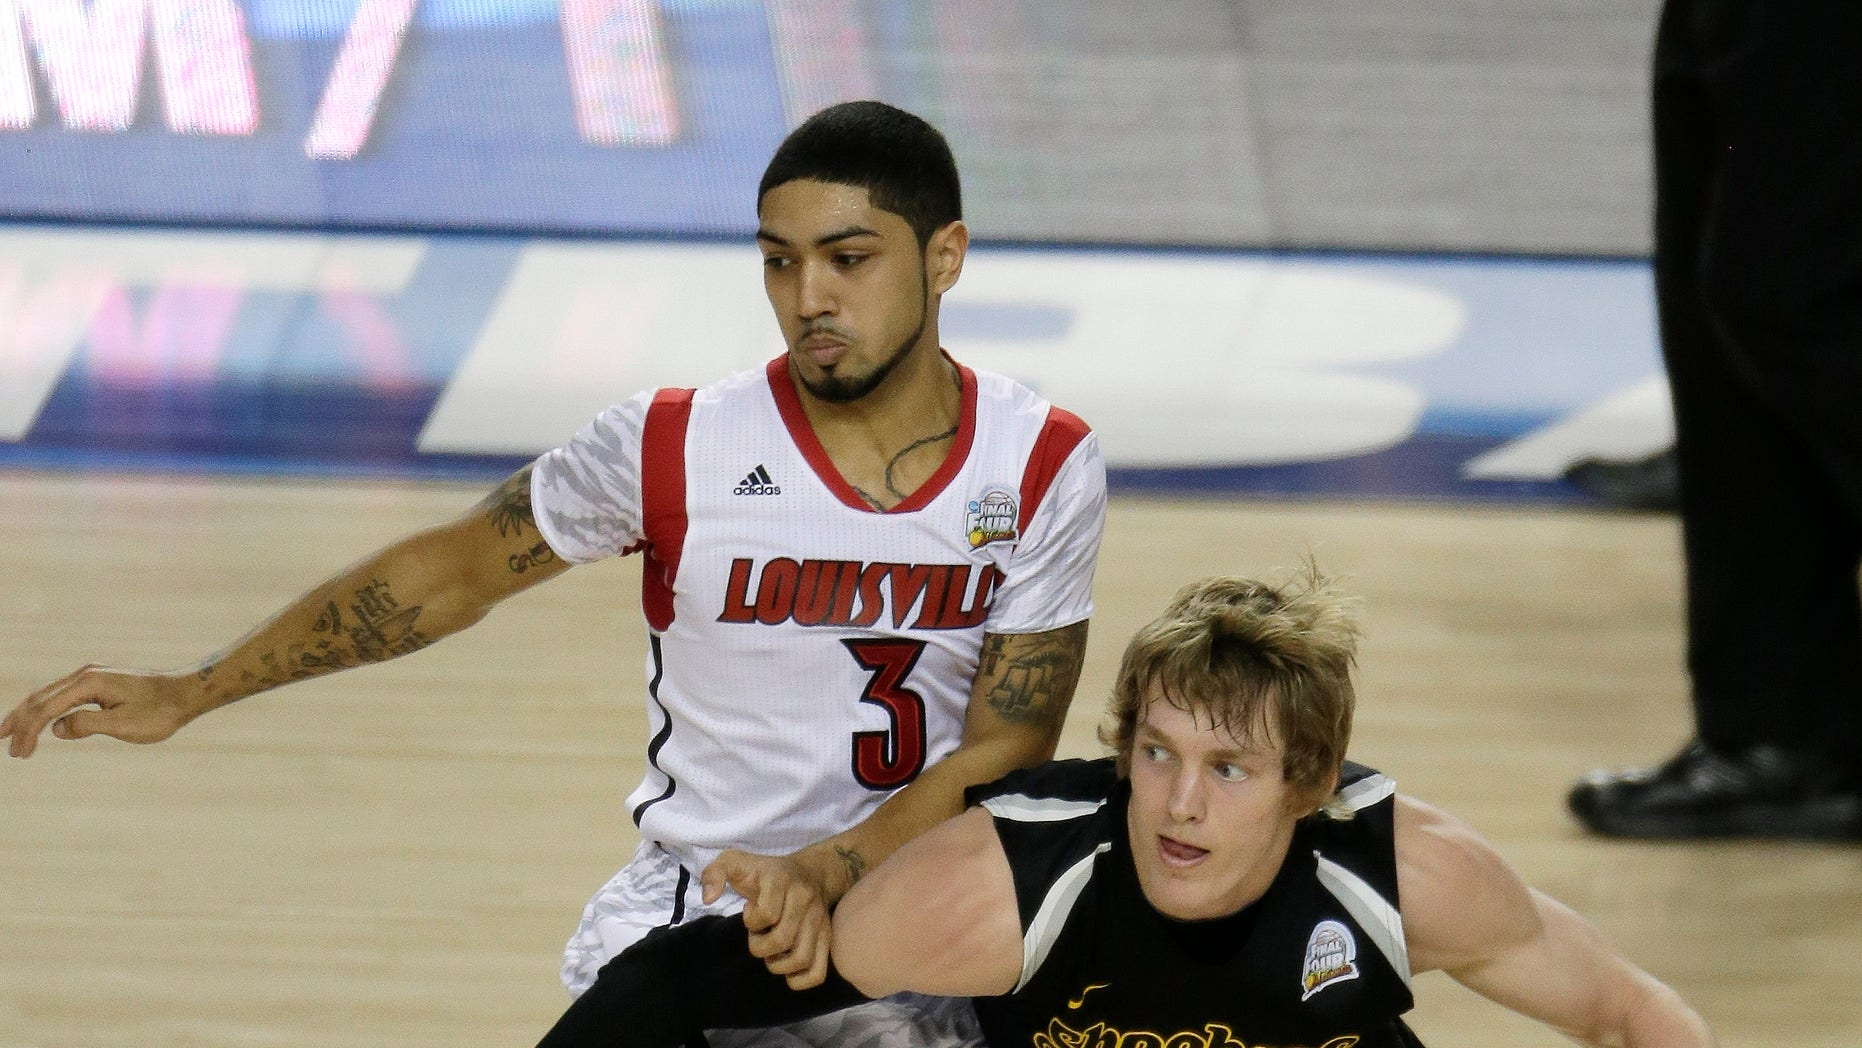 Wichita State's Ron Baker (31) moves around Louisville's Peyton Siva (3) during the first half of the NCAA Final Four tournament college basketball semifinal game Saturday, April 6, 2013, in Atlanta. (AP Photo/Chris O'Meara)